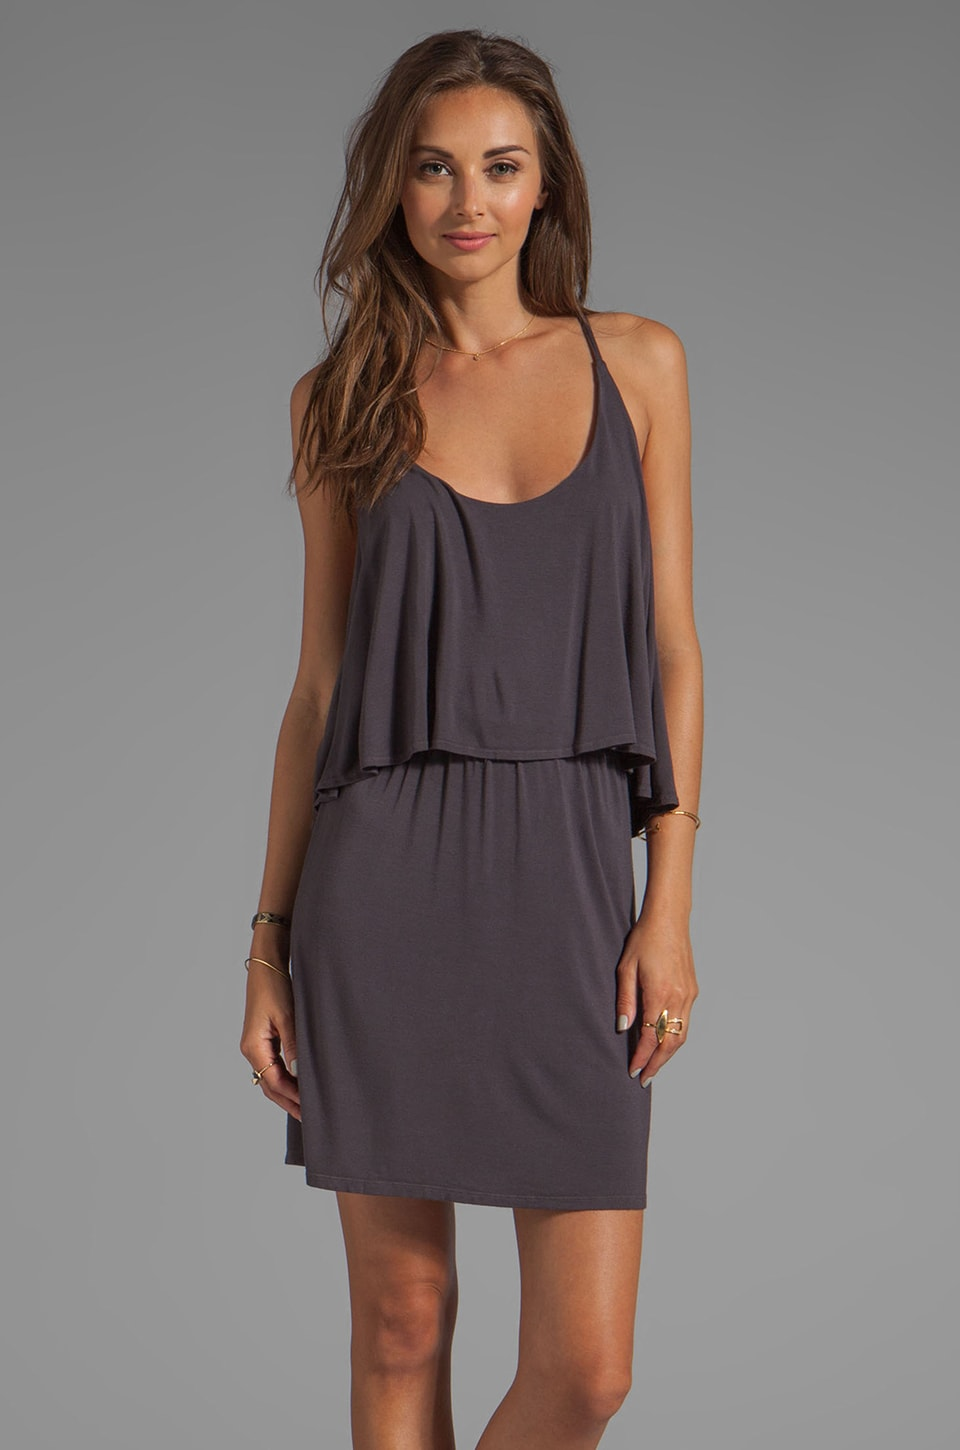 Bobi Jersey Layered Dress in Empire